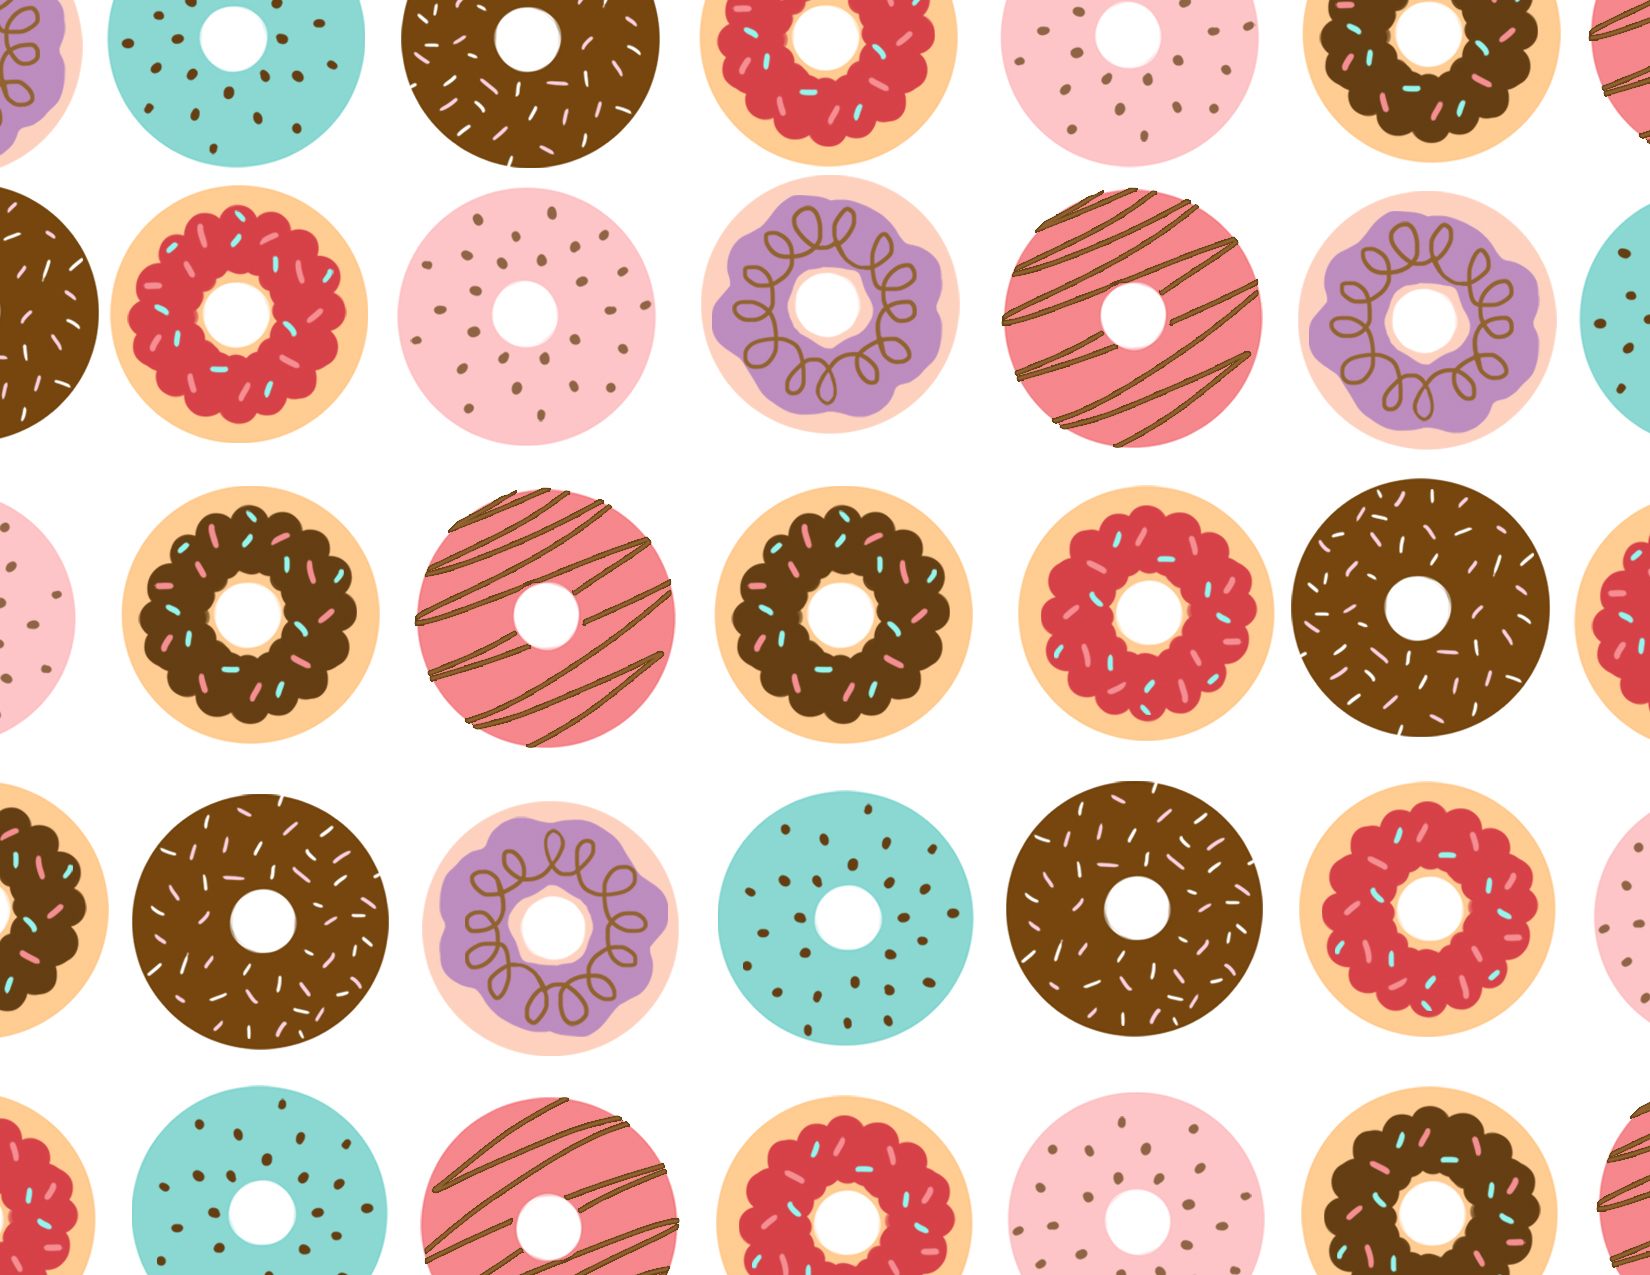 Donuts Galore Stationery.jpg